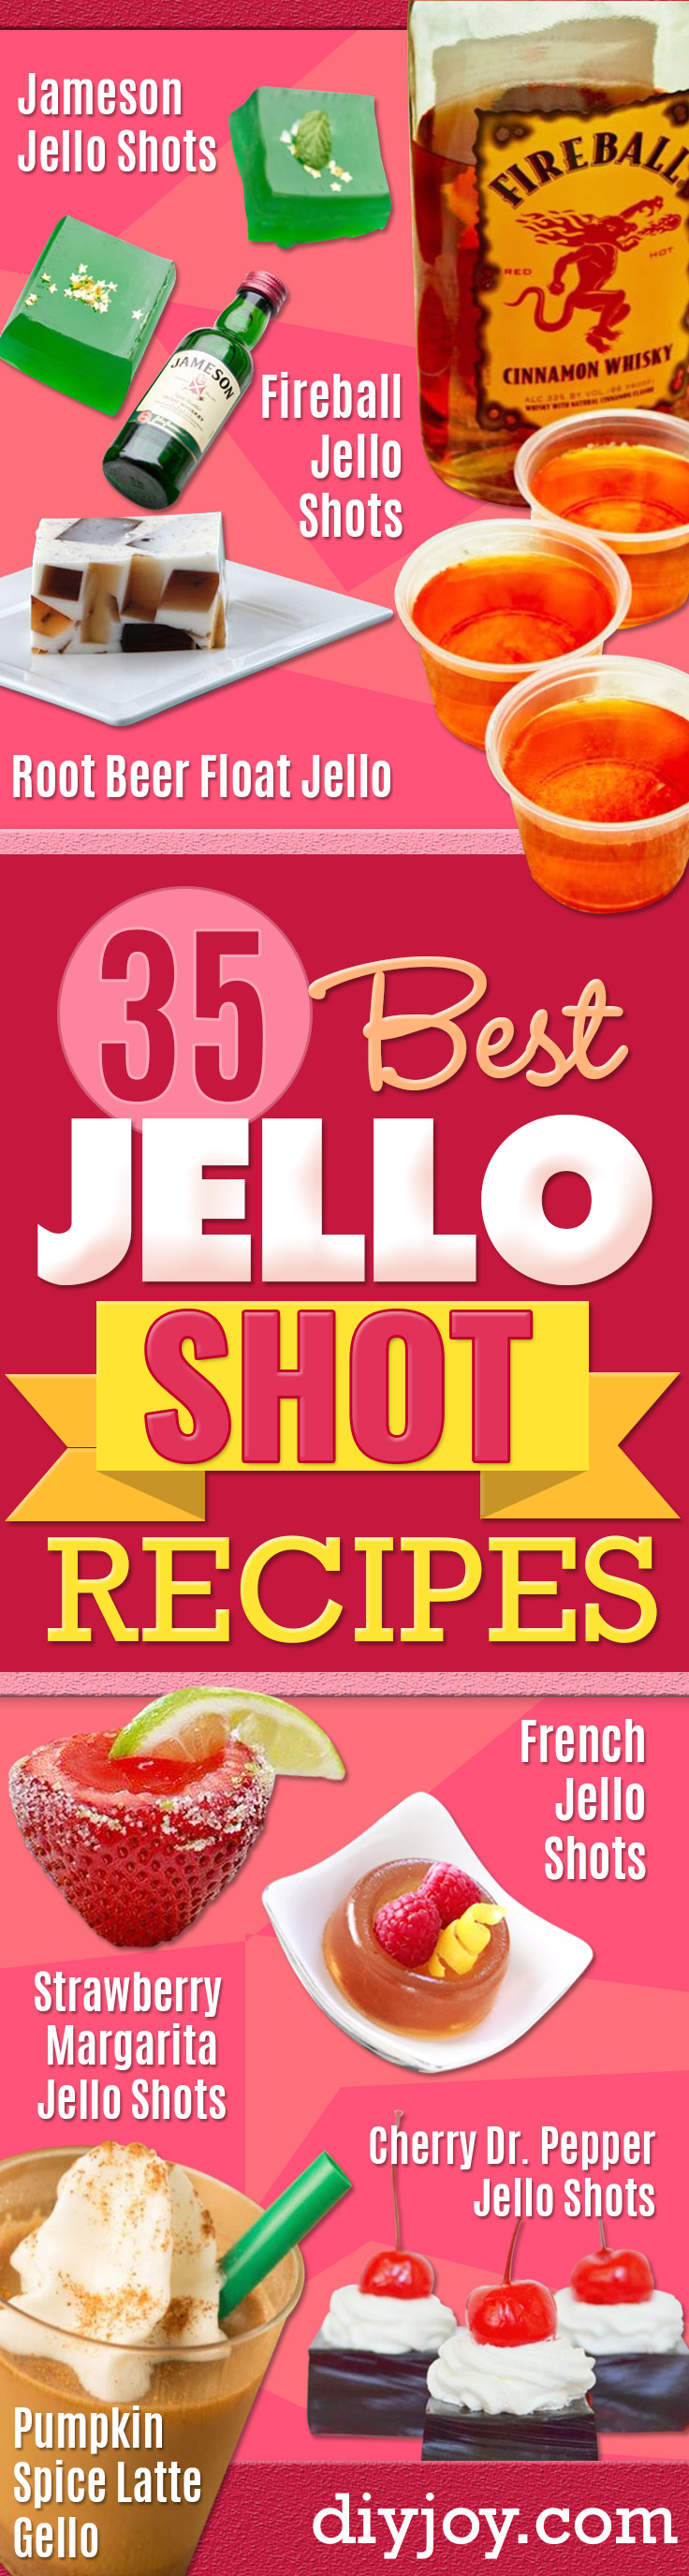 Jello Shot Recipes - Easy Jello Shots Recipe Ideas with Vodka, Strawberry, Tequila, Rum, Jolly Rancher and Creative Alcohol - Unique and Fun Drinks for Parties like Whiskey Fireball, Fall Halloween Versions, Malibu, 4th of July, Birthday, Summer, Christmas and Birthdays